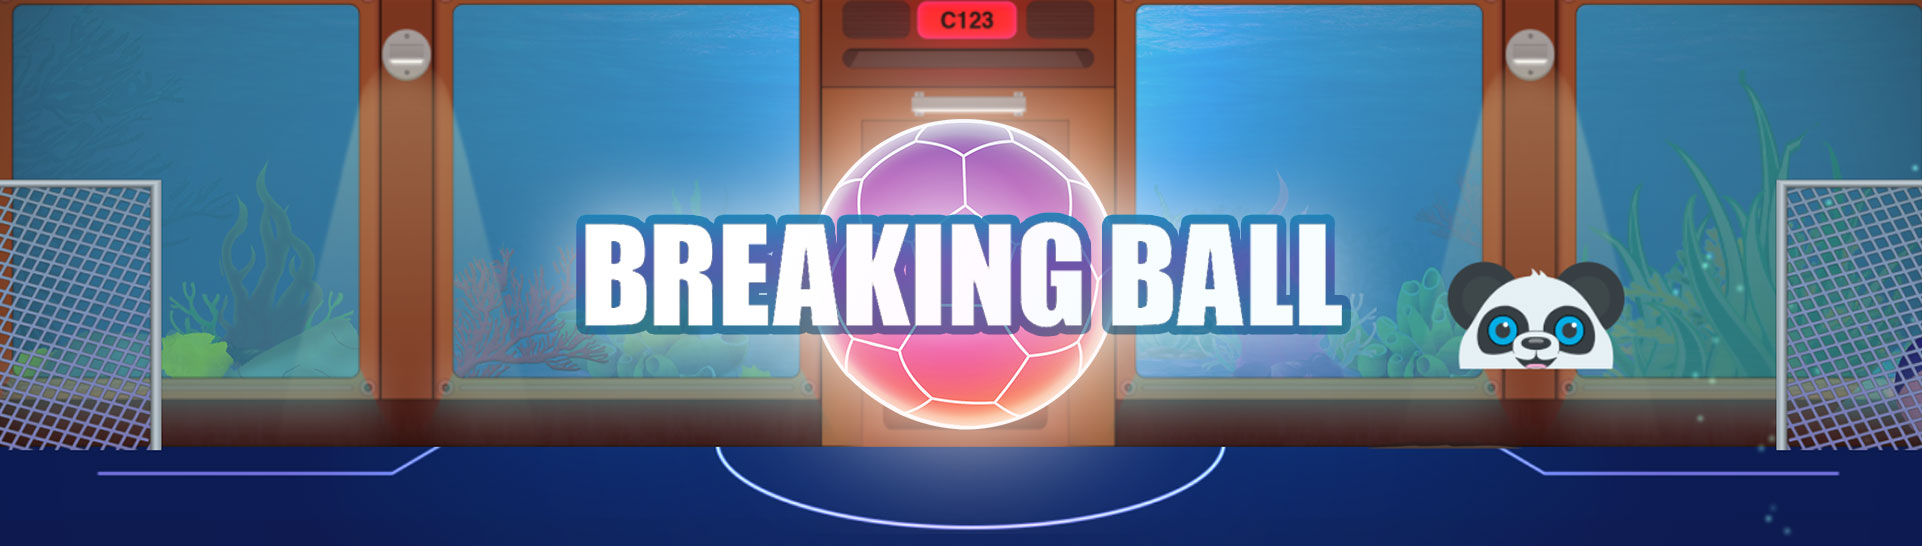 Breaking ball